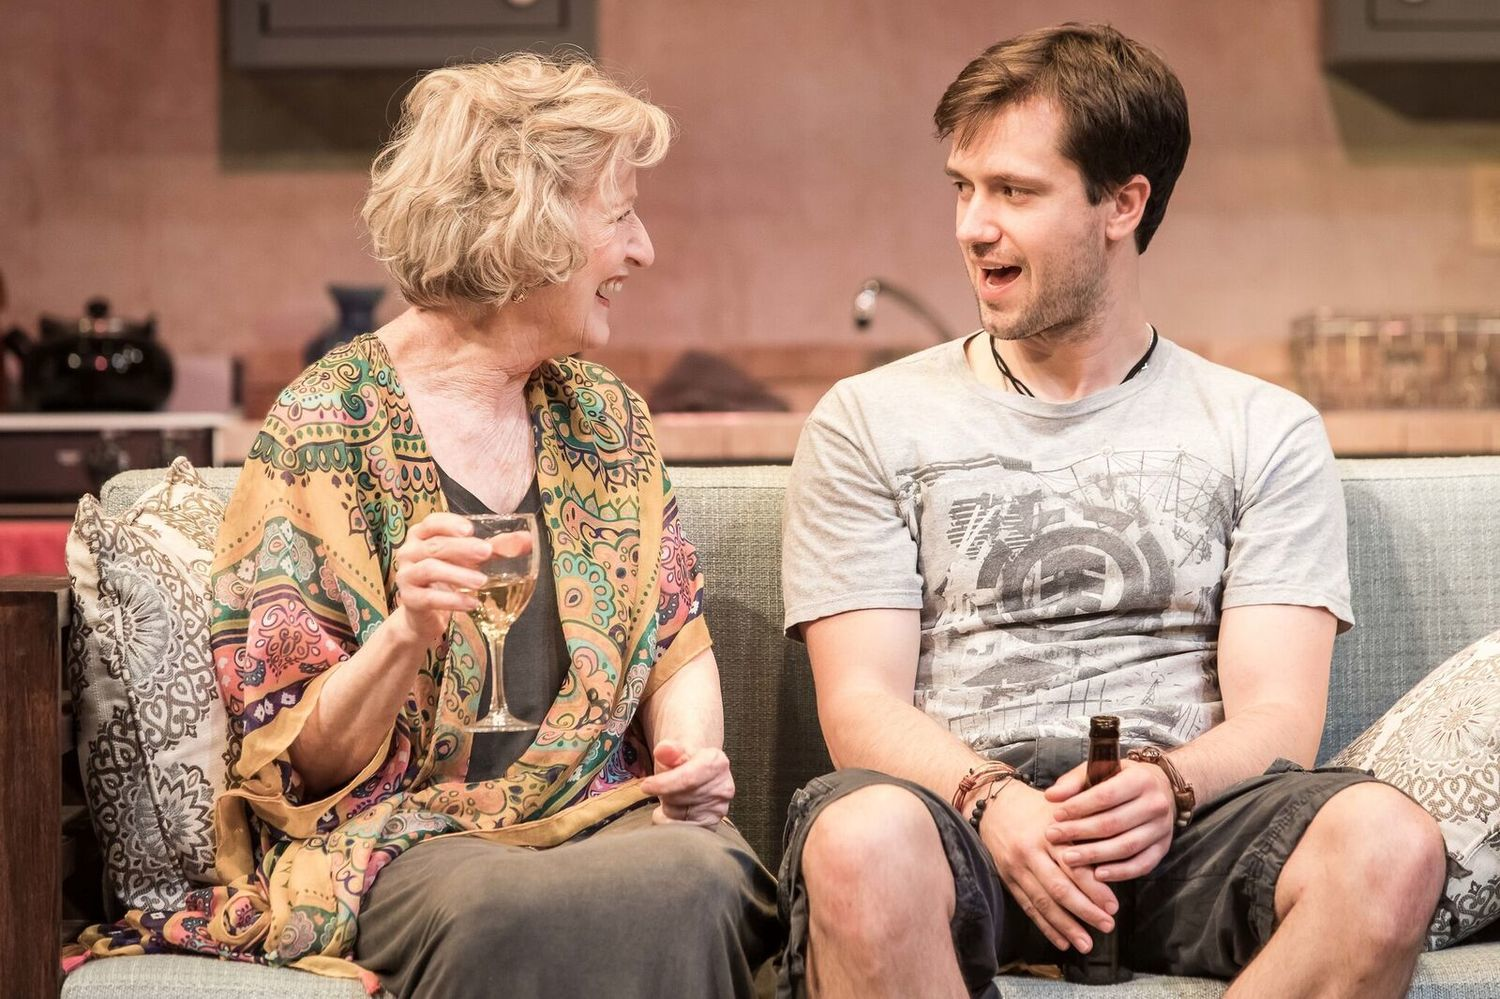 BWW Review: WELCOME TO PARADISE at Purple Rose Theatre Company Is A Heartwarming New Play!